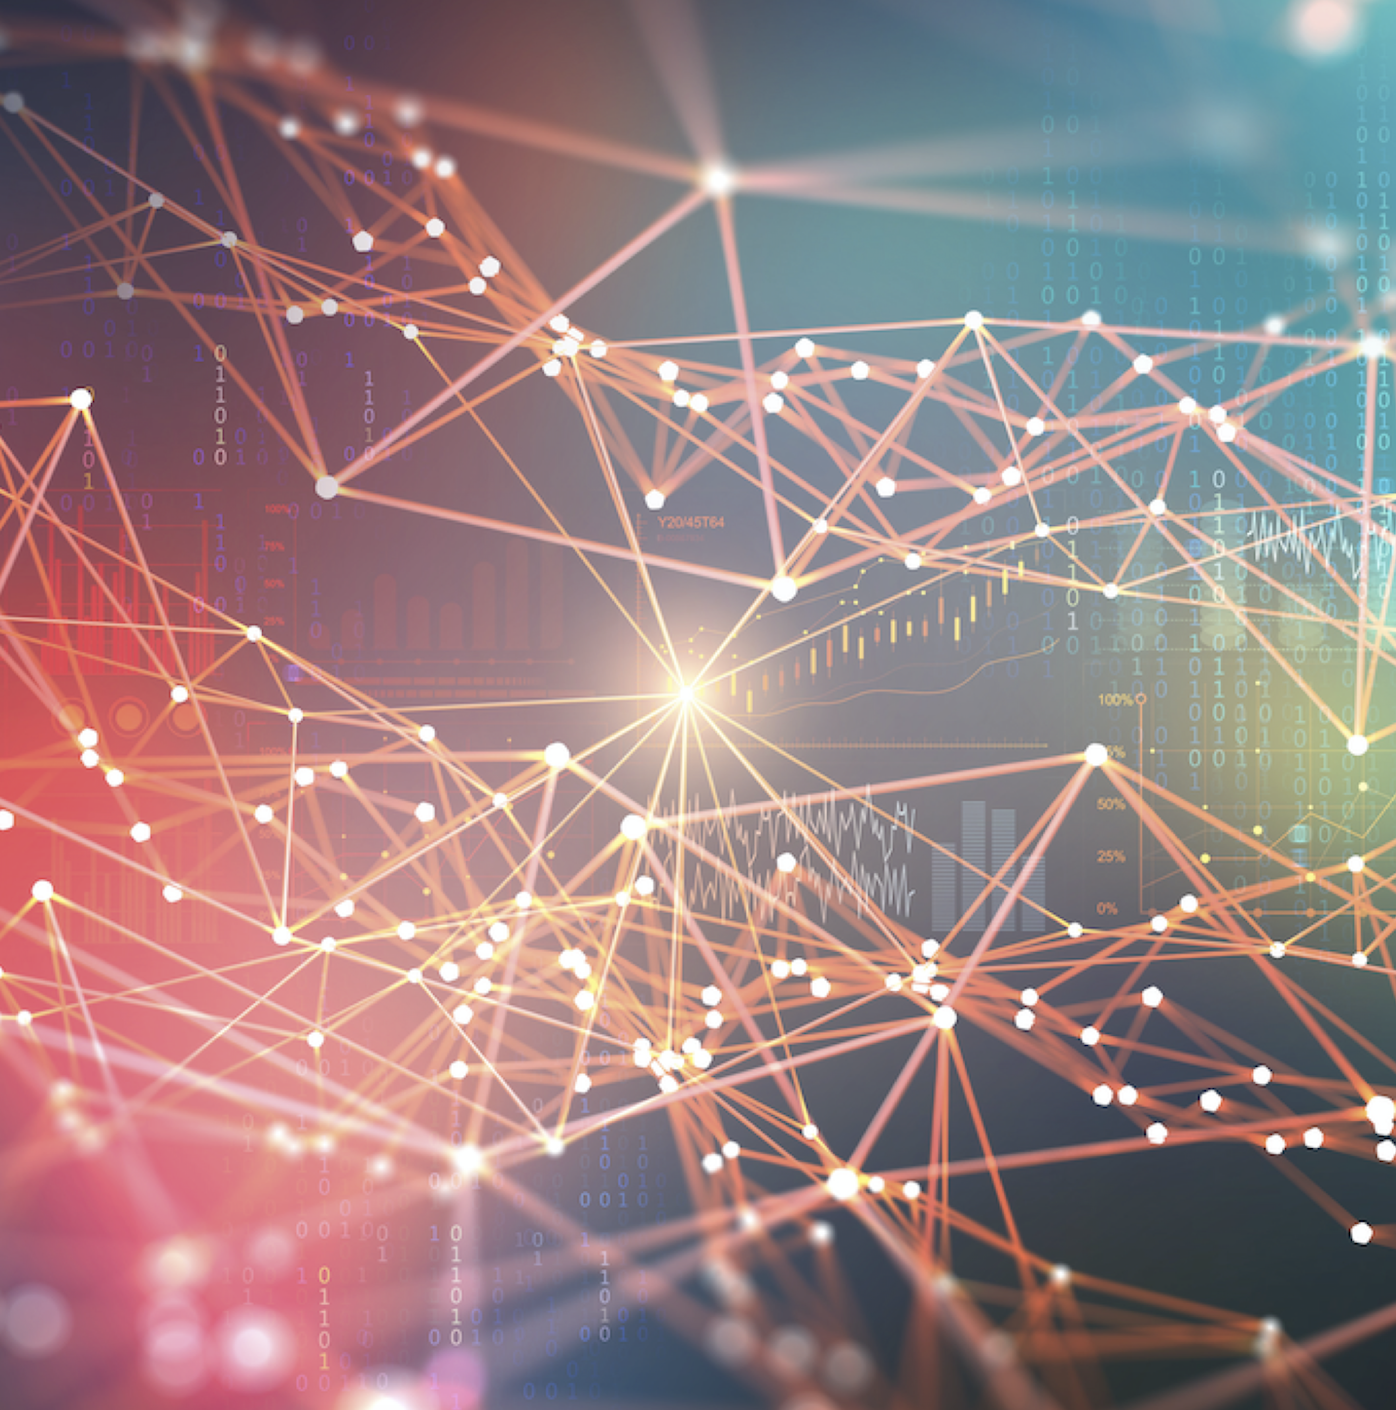 Supply chain and logistics adoption of AI is taking off because companies are increasingly realizing the technology's tangible value in solving complexity issues. Learn more about where AI is having the most impact today — including exception and capacity management — and how to get started.